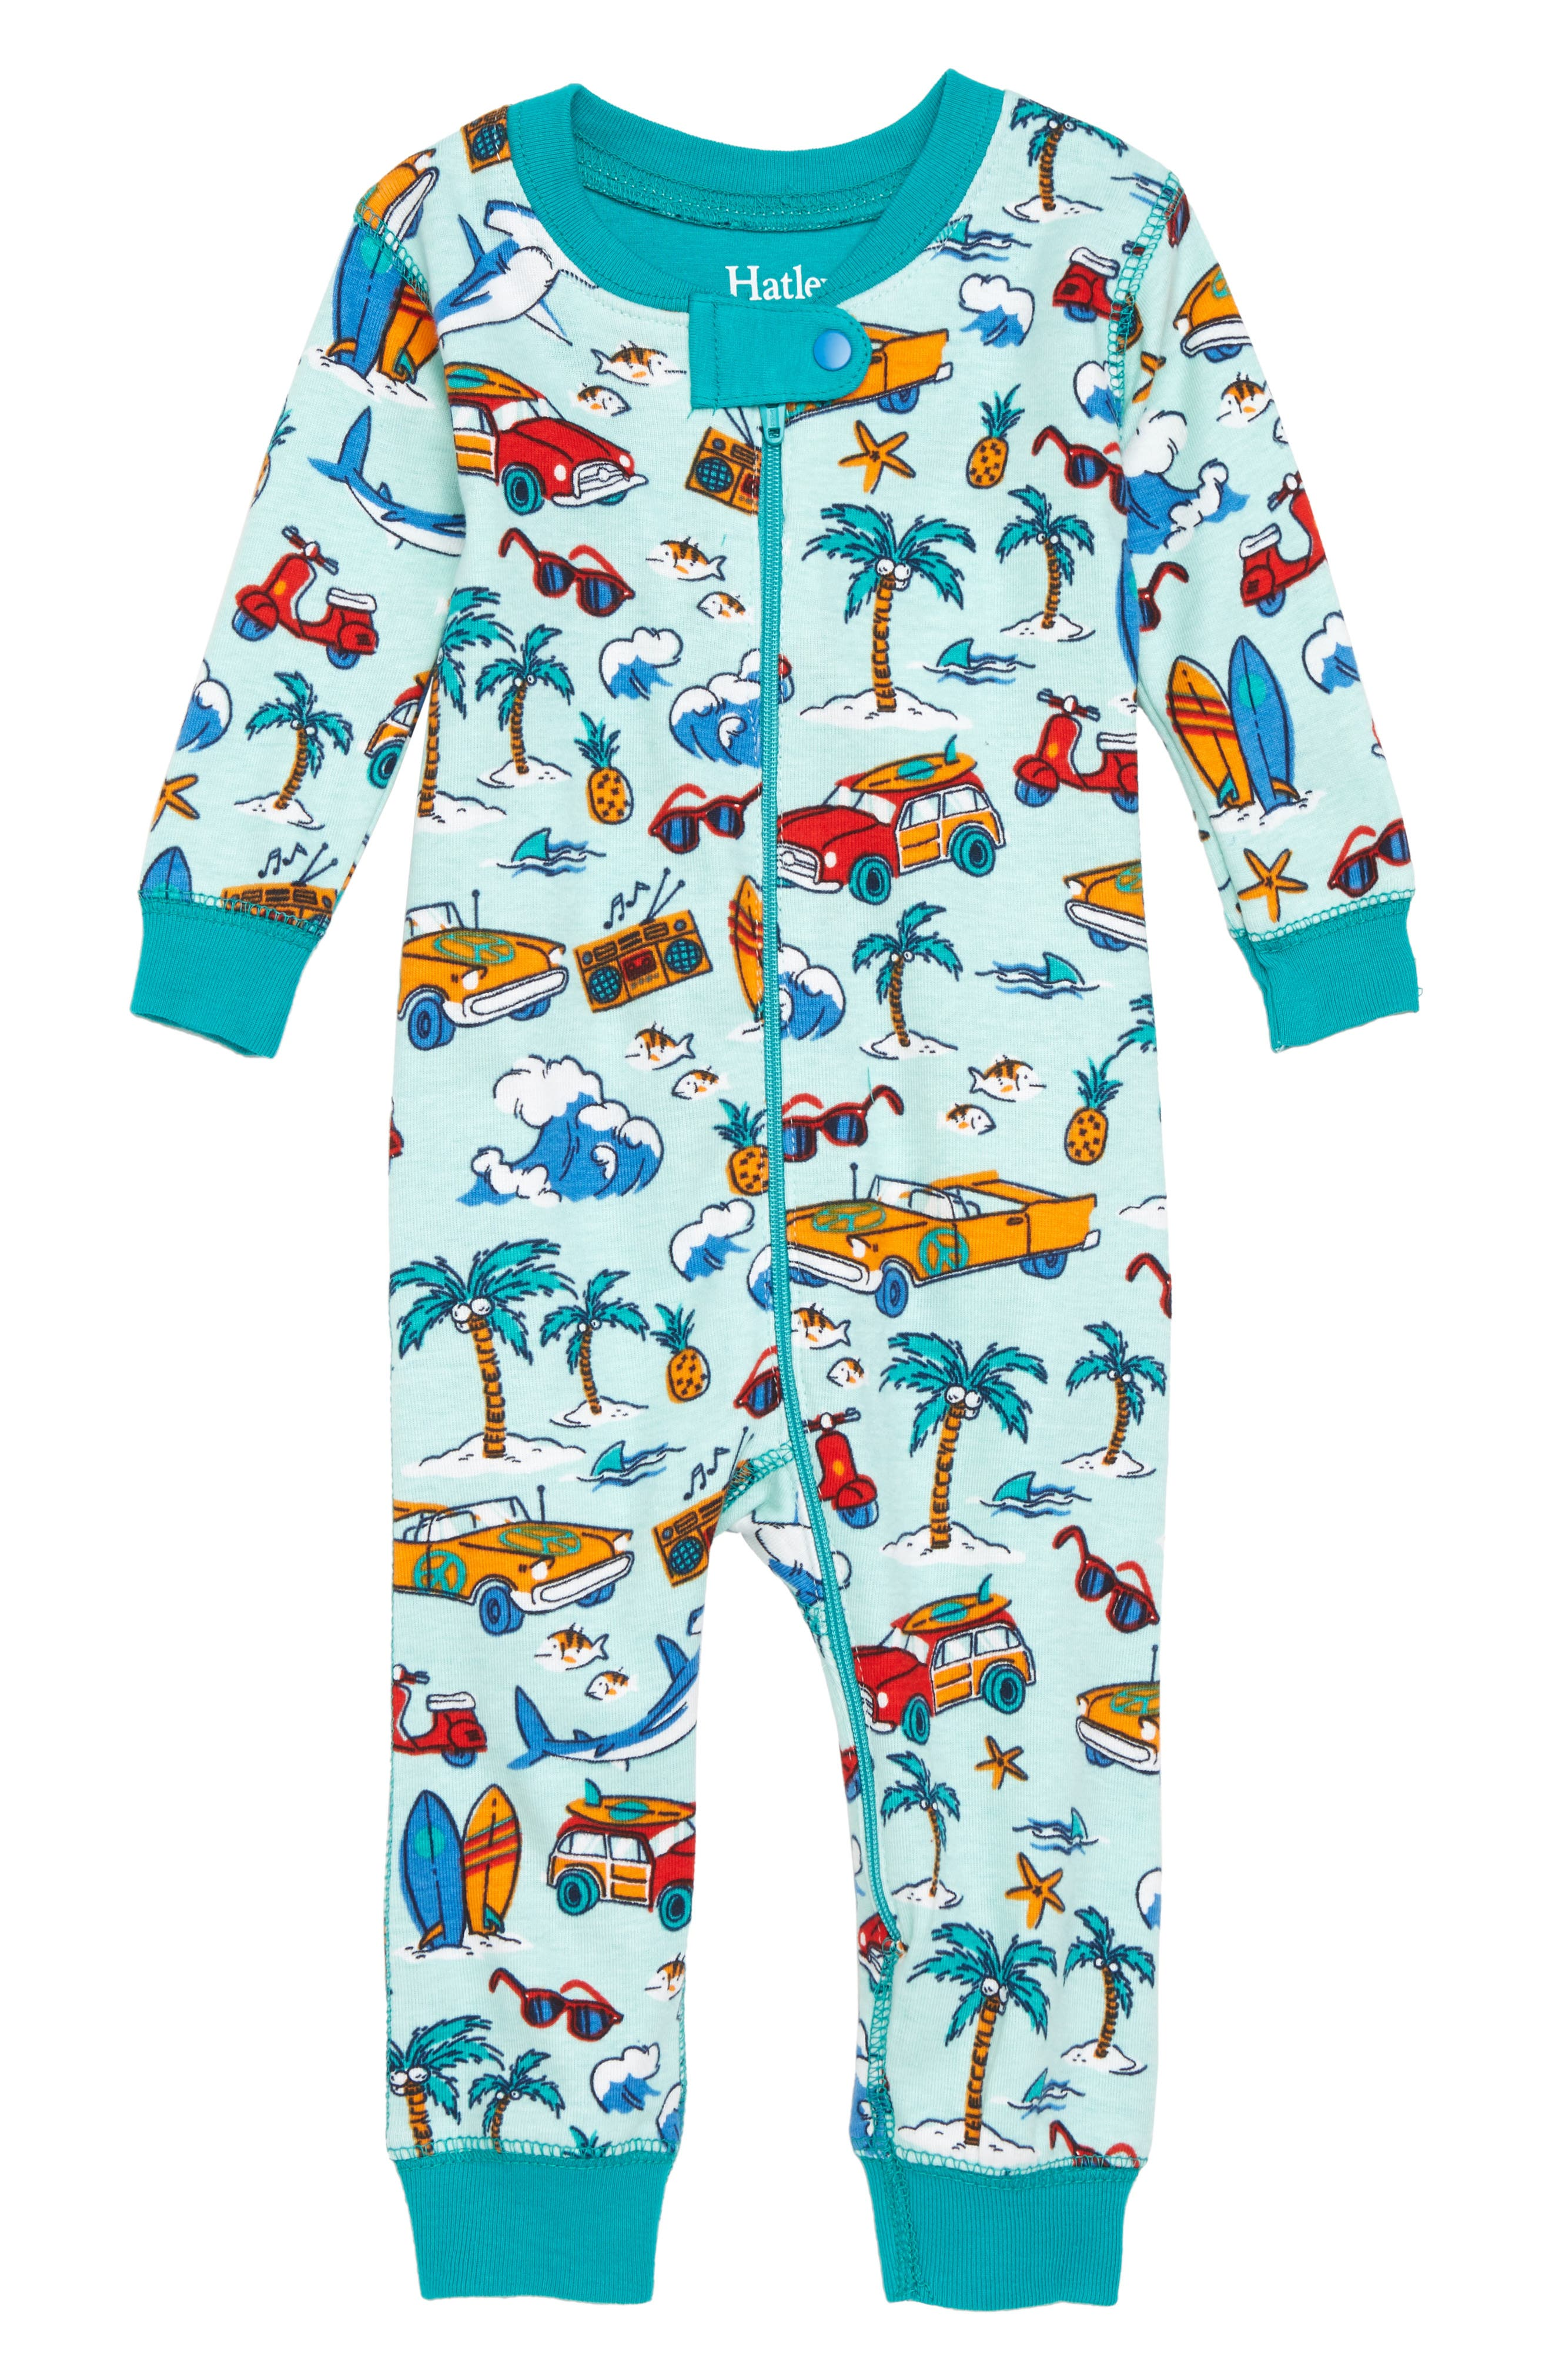 Haltey Organic Cotton Fitted One-Piece Pajamas,                             Main thumbnail 1, color,